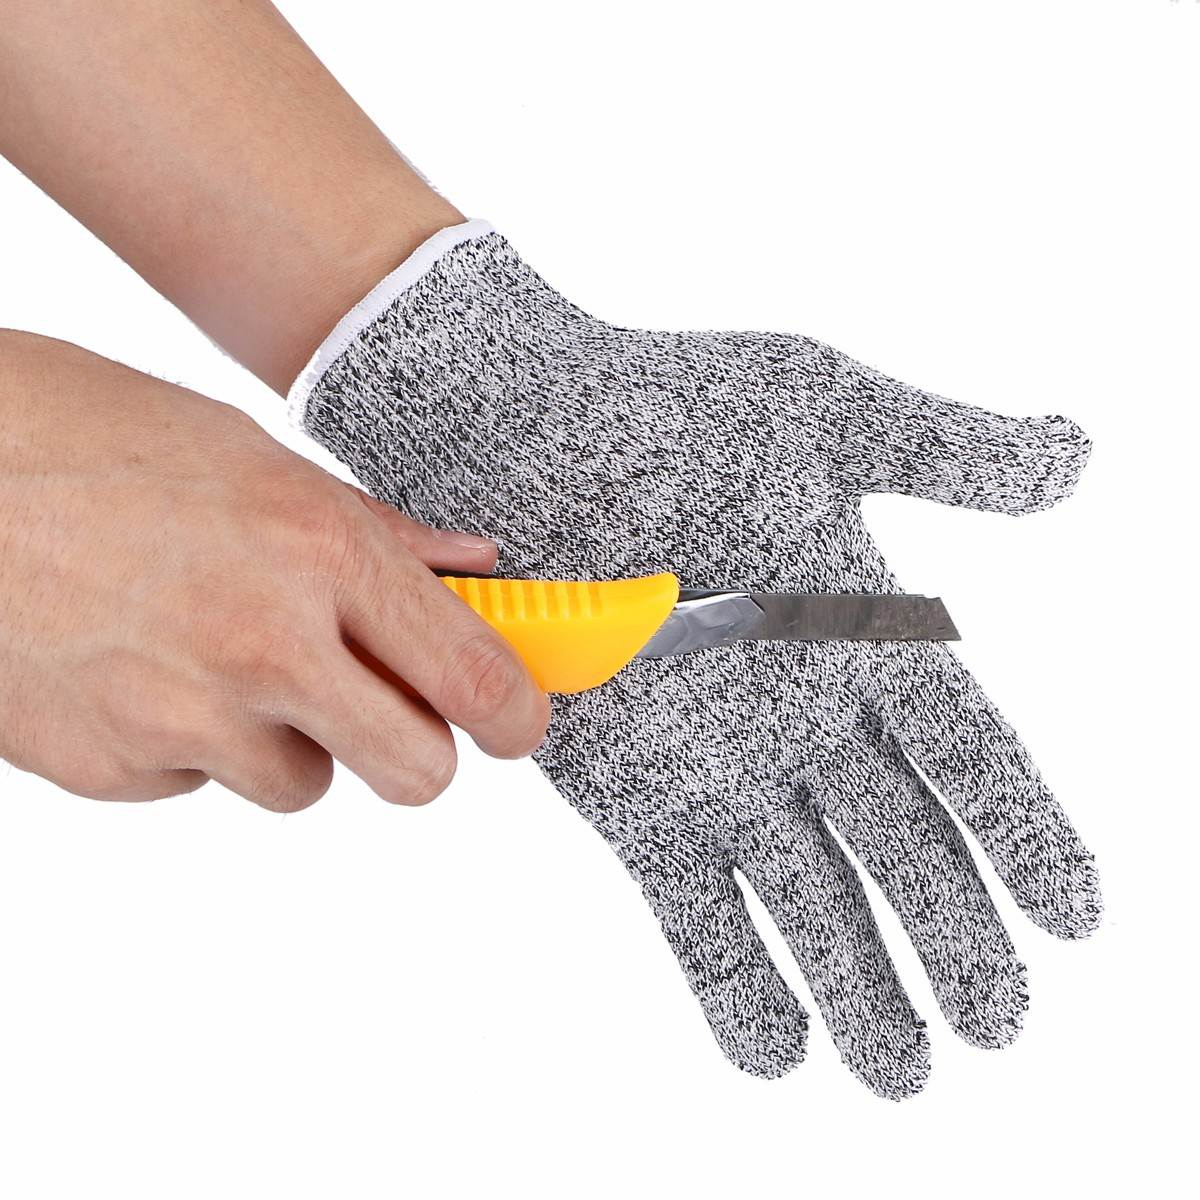 Safurance Resistant Gloves Kitchen Cut Food Protection High Performance 5 Level Protection Workplace Safety Glove